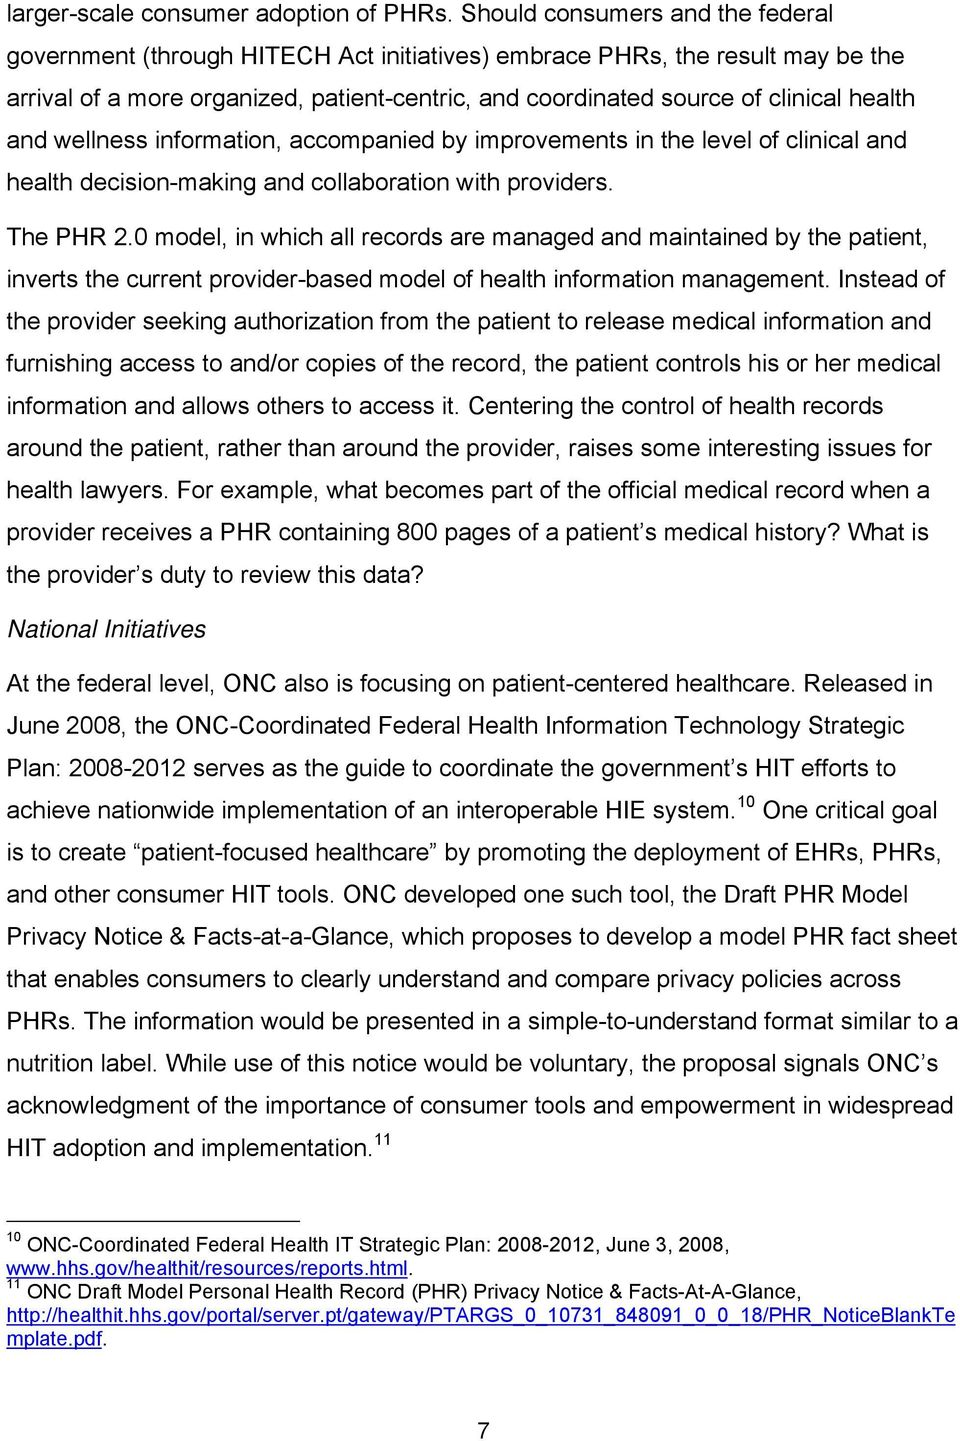 health and wellness information, accompanied by improvements in the level of clinical and health decision-making and collaboration with providers. The PHR 2.